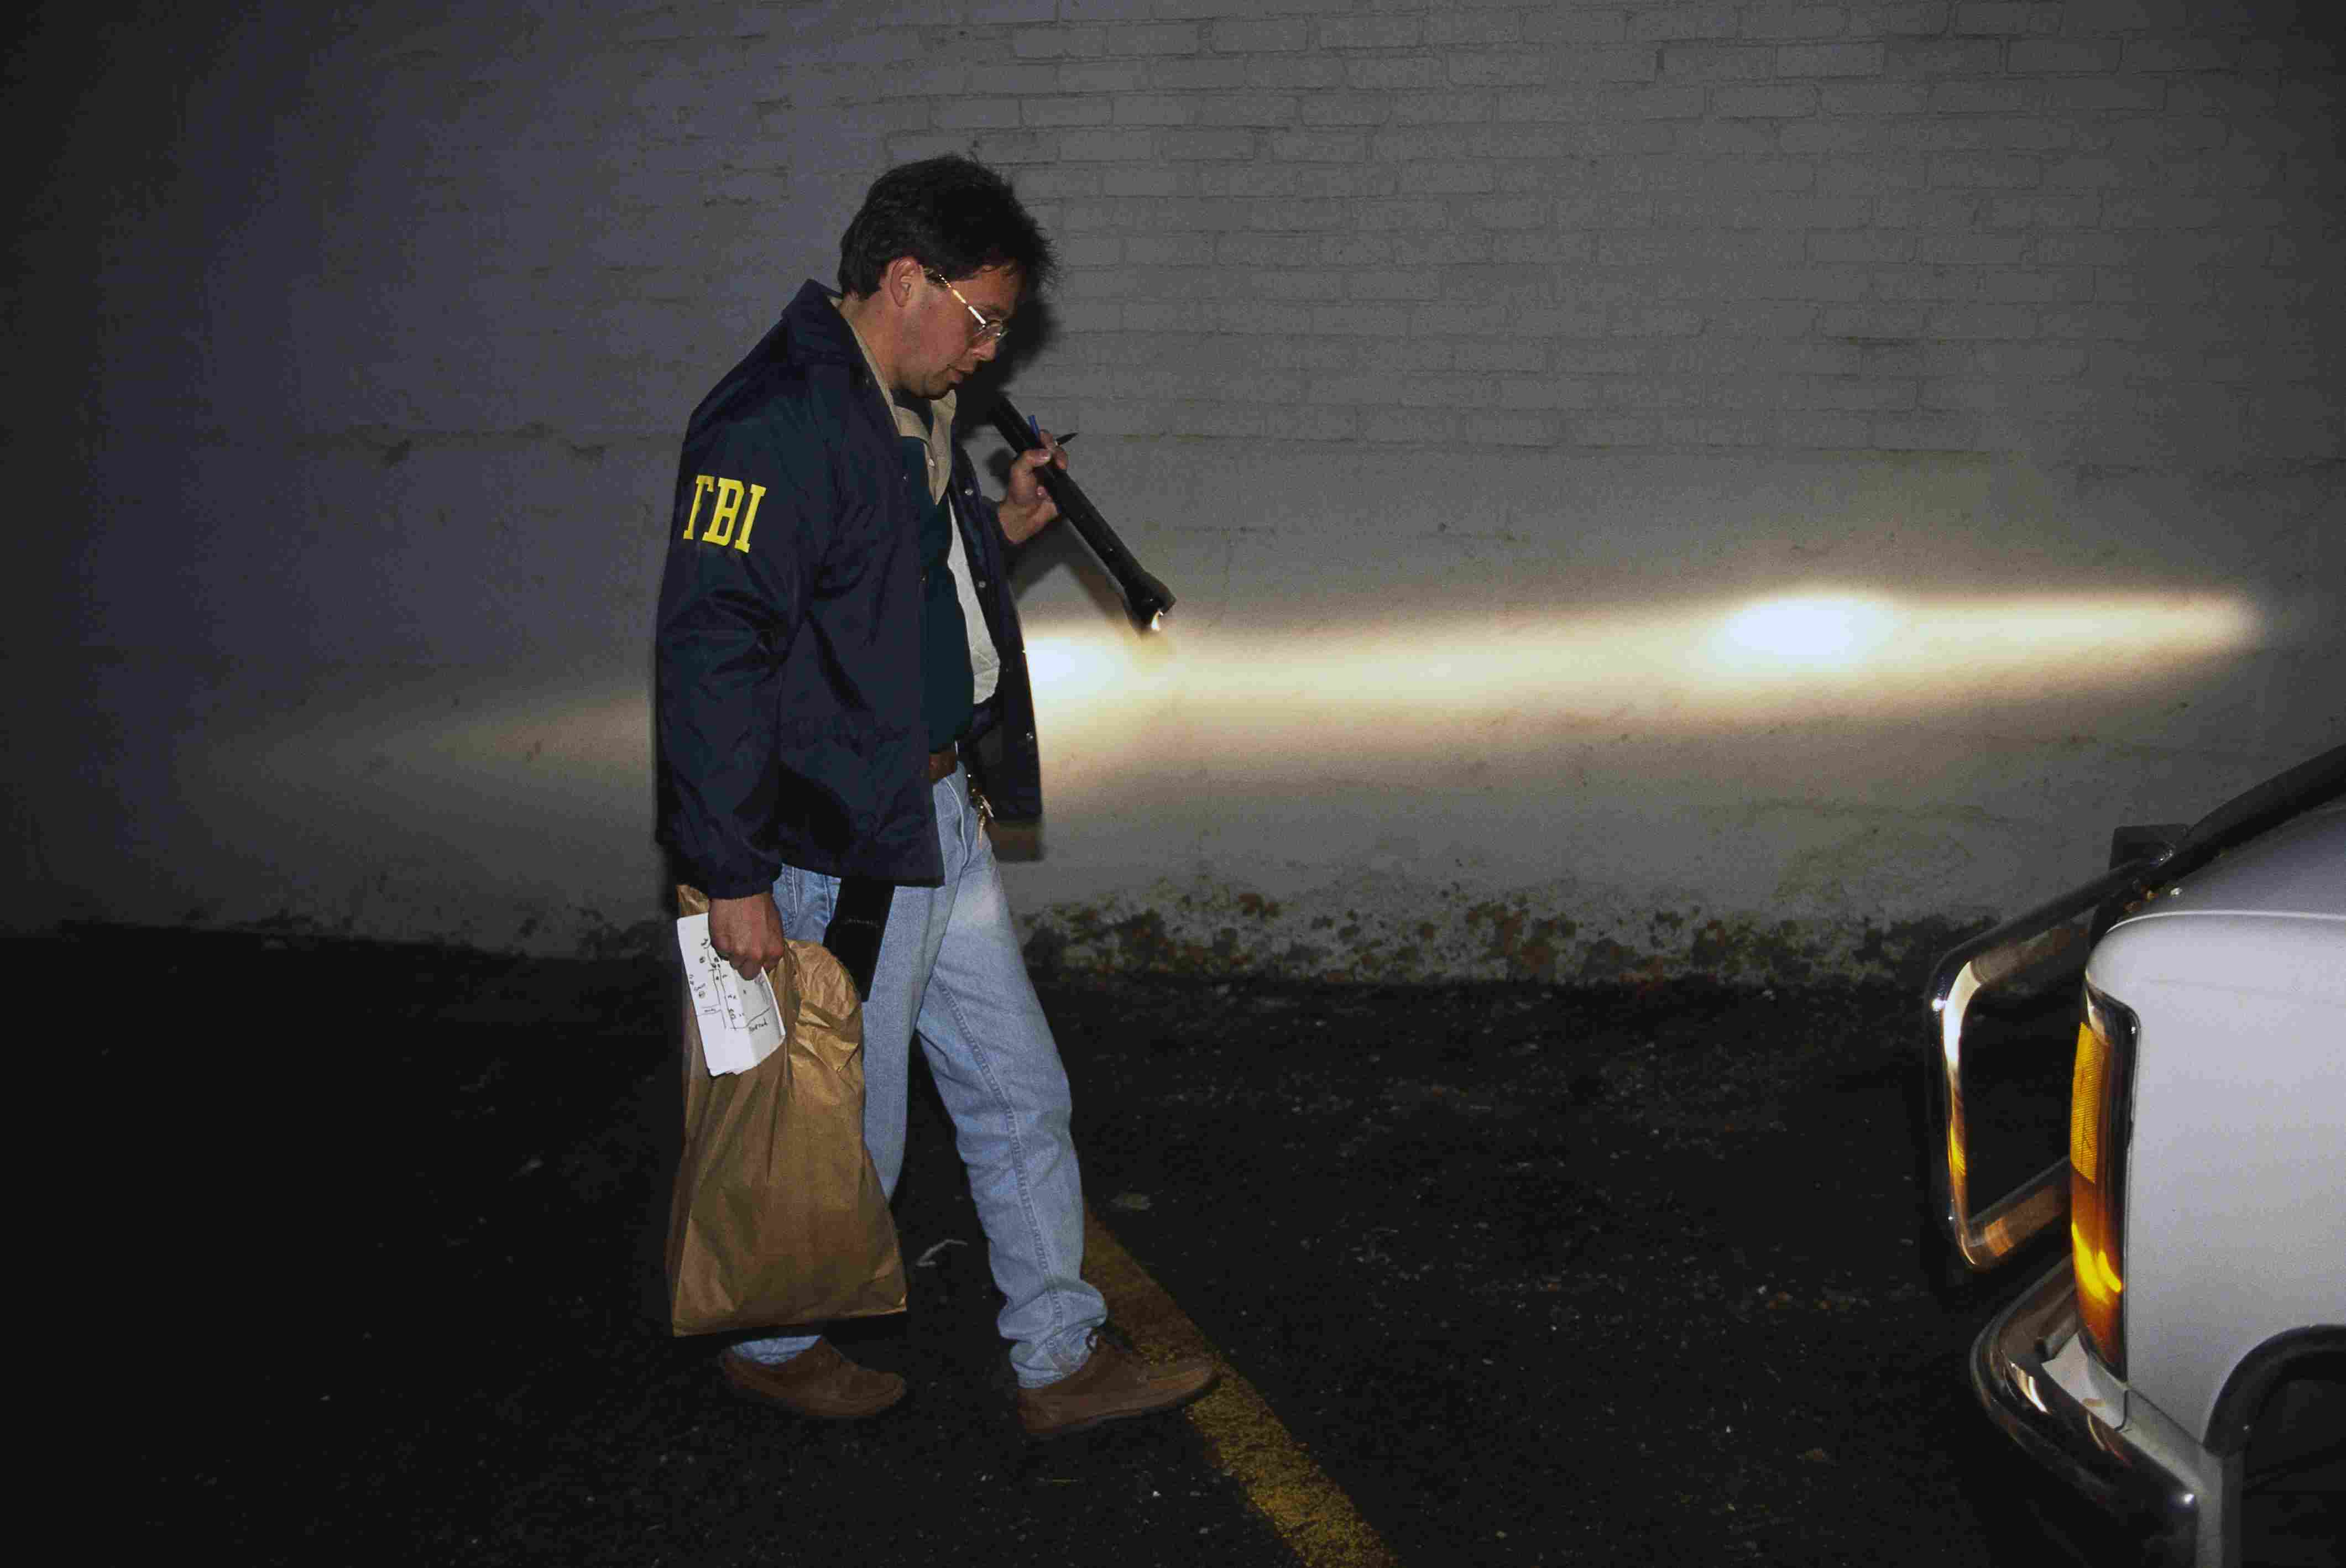 FBI agent looking for evidence